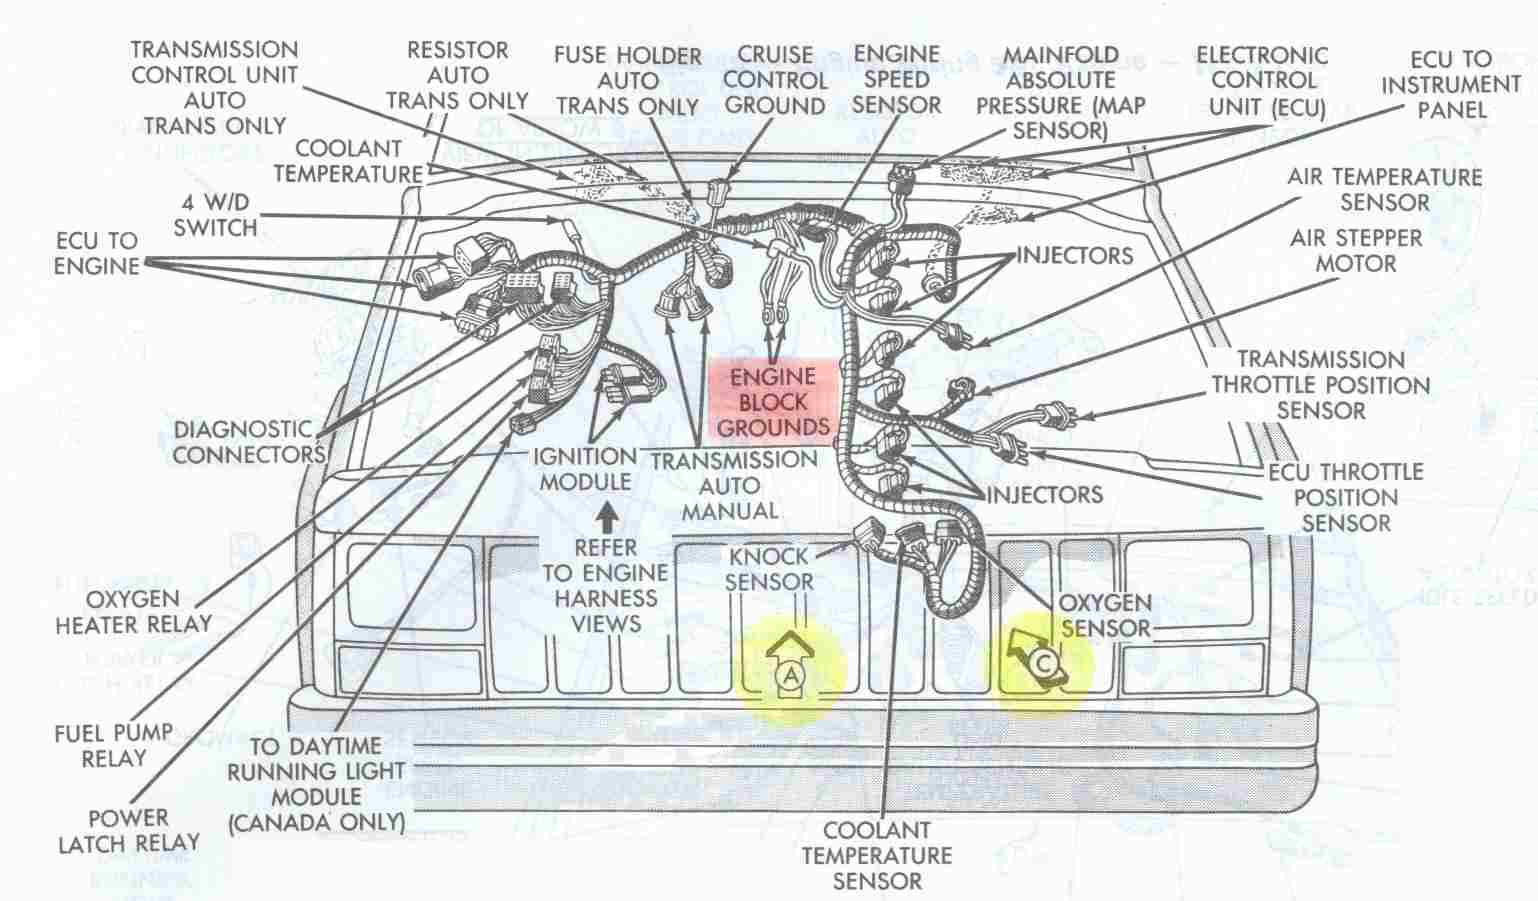 hight resolution of 1996 jeep engine diagram wiring diagram blog1996 jeep cherokee engine diagram wiring diagram name 1996 jeep